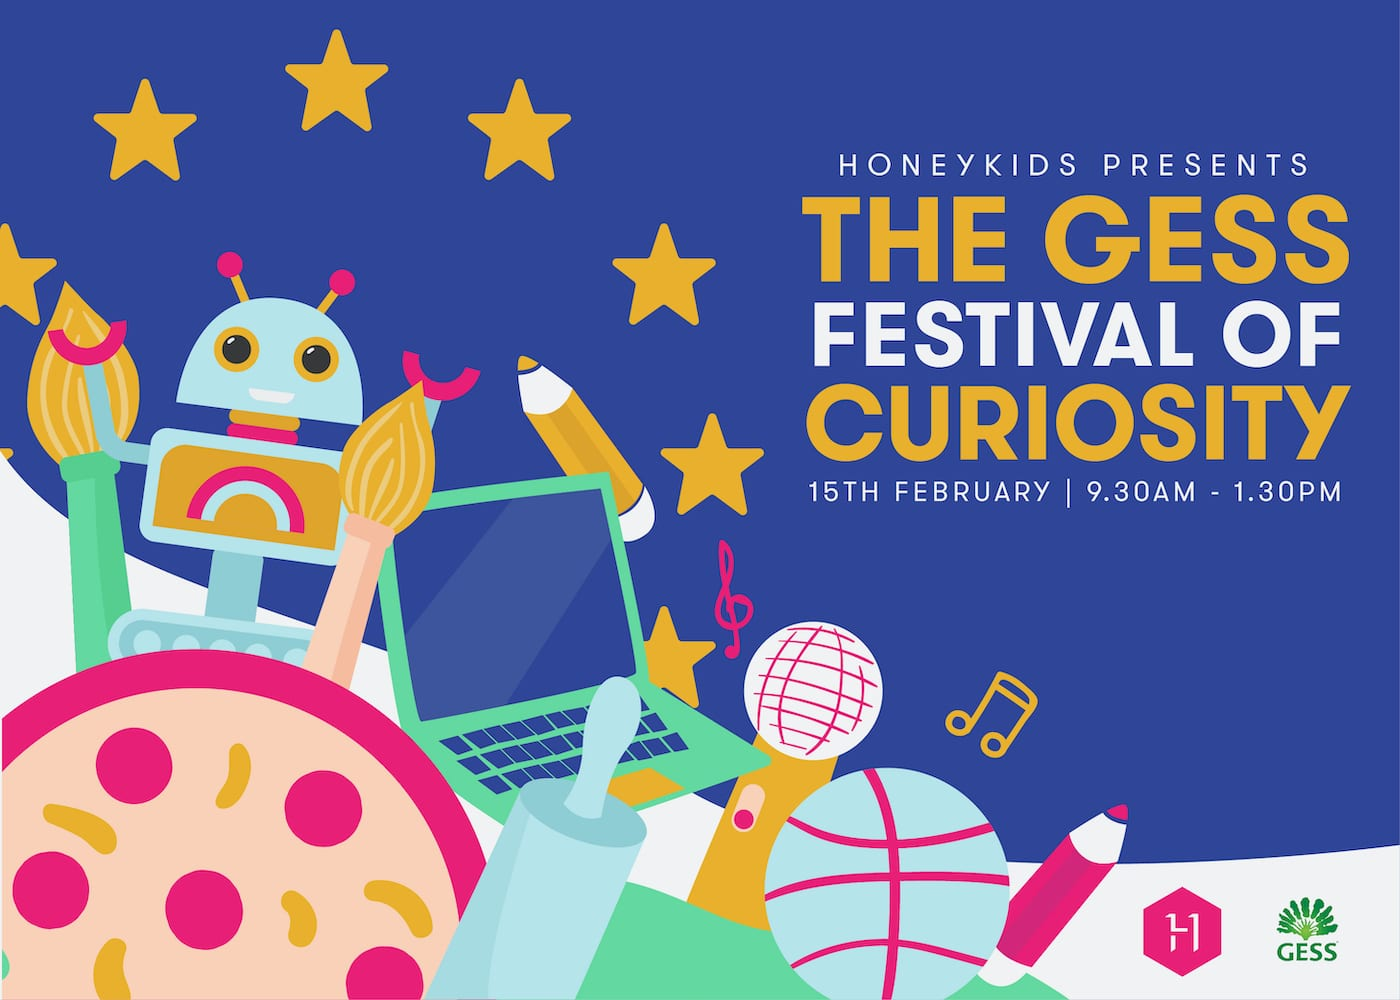 GESS Curious – The GESS Festival of Curiosity